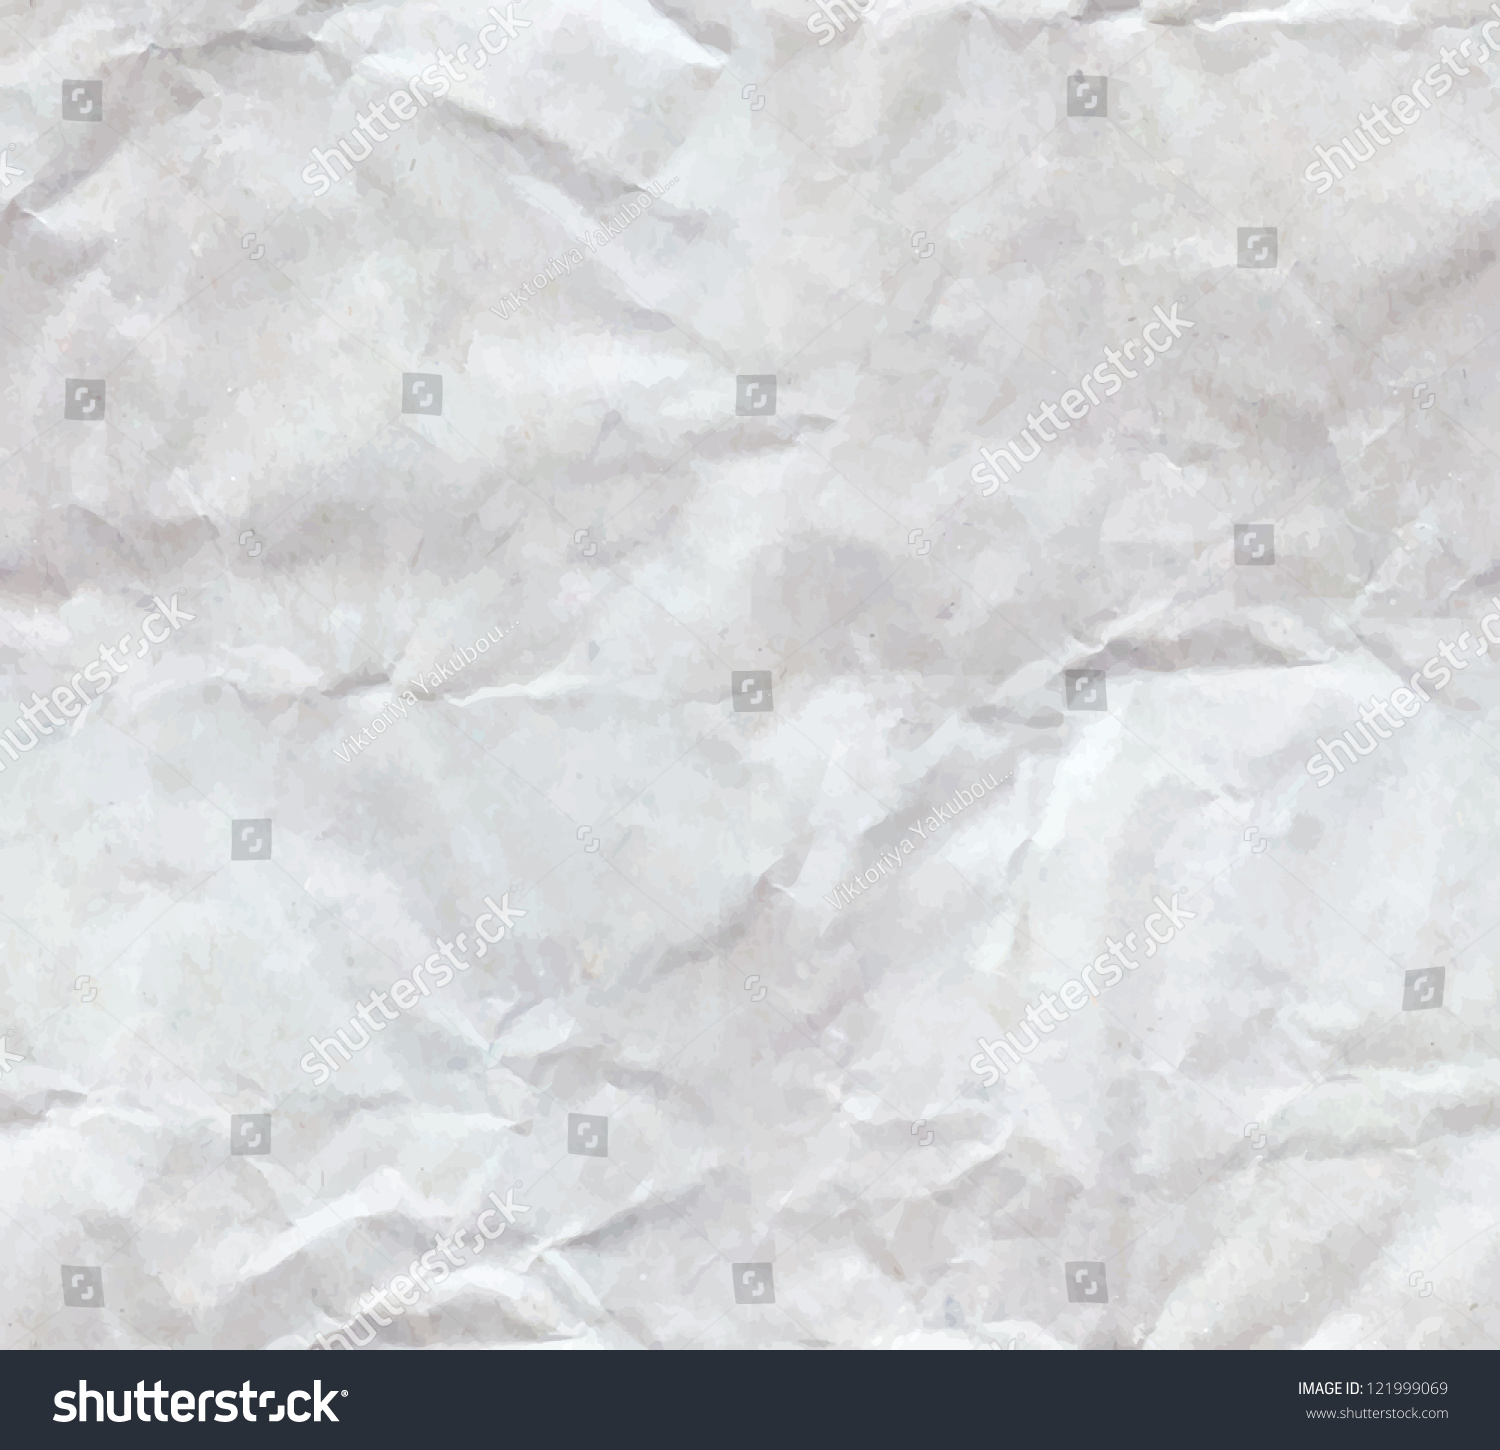 Texture Of Crumpled Paper Sheet Seamless Stock Vector ...